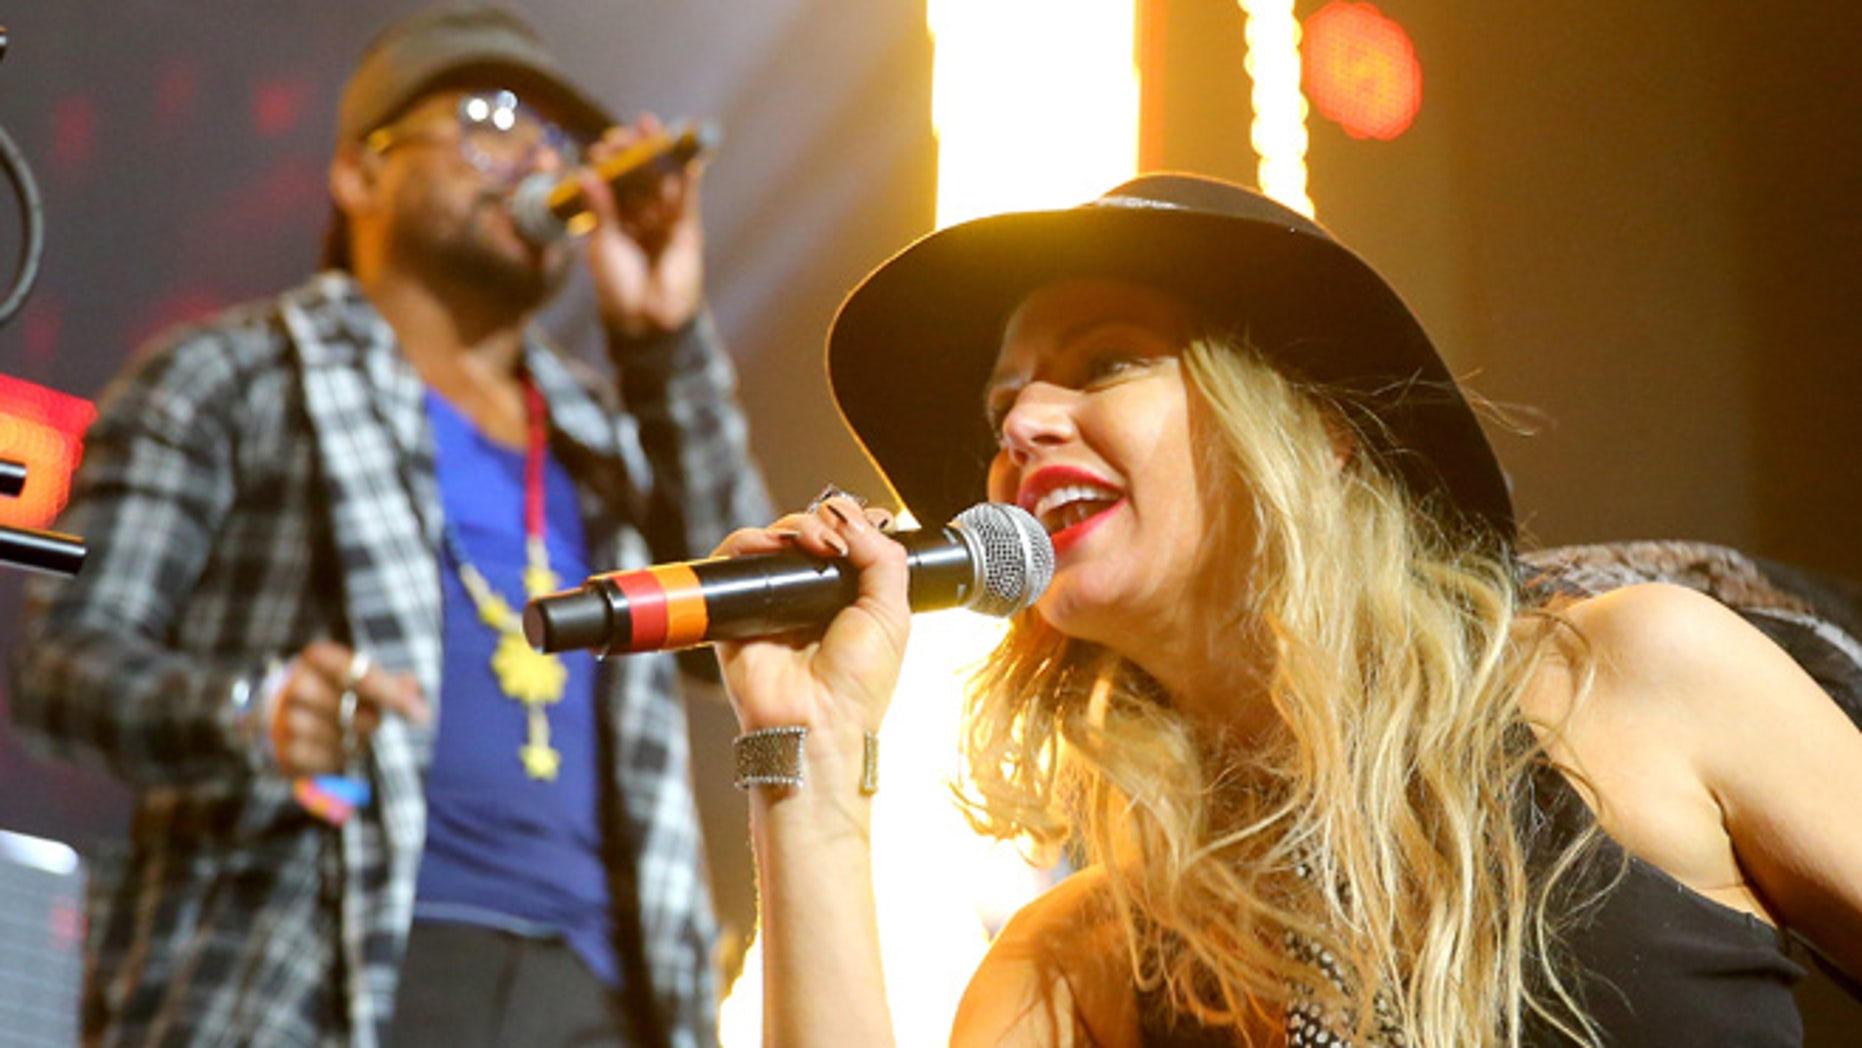 INDIO, CA - APRIL 12:  Recording artists will.i.am (L) and Fergie of The Black Eyed Peas perform onstage with David Guetta during day 3 of the 2015 Coachella Valley Music & Arts Festival (Weekend 1) at the Empire Polo Club on April 12, 2015 in Indio, California.  (Photo by Mark Davis/Getty Images for Coachella)